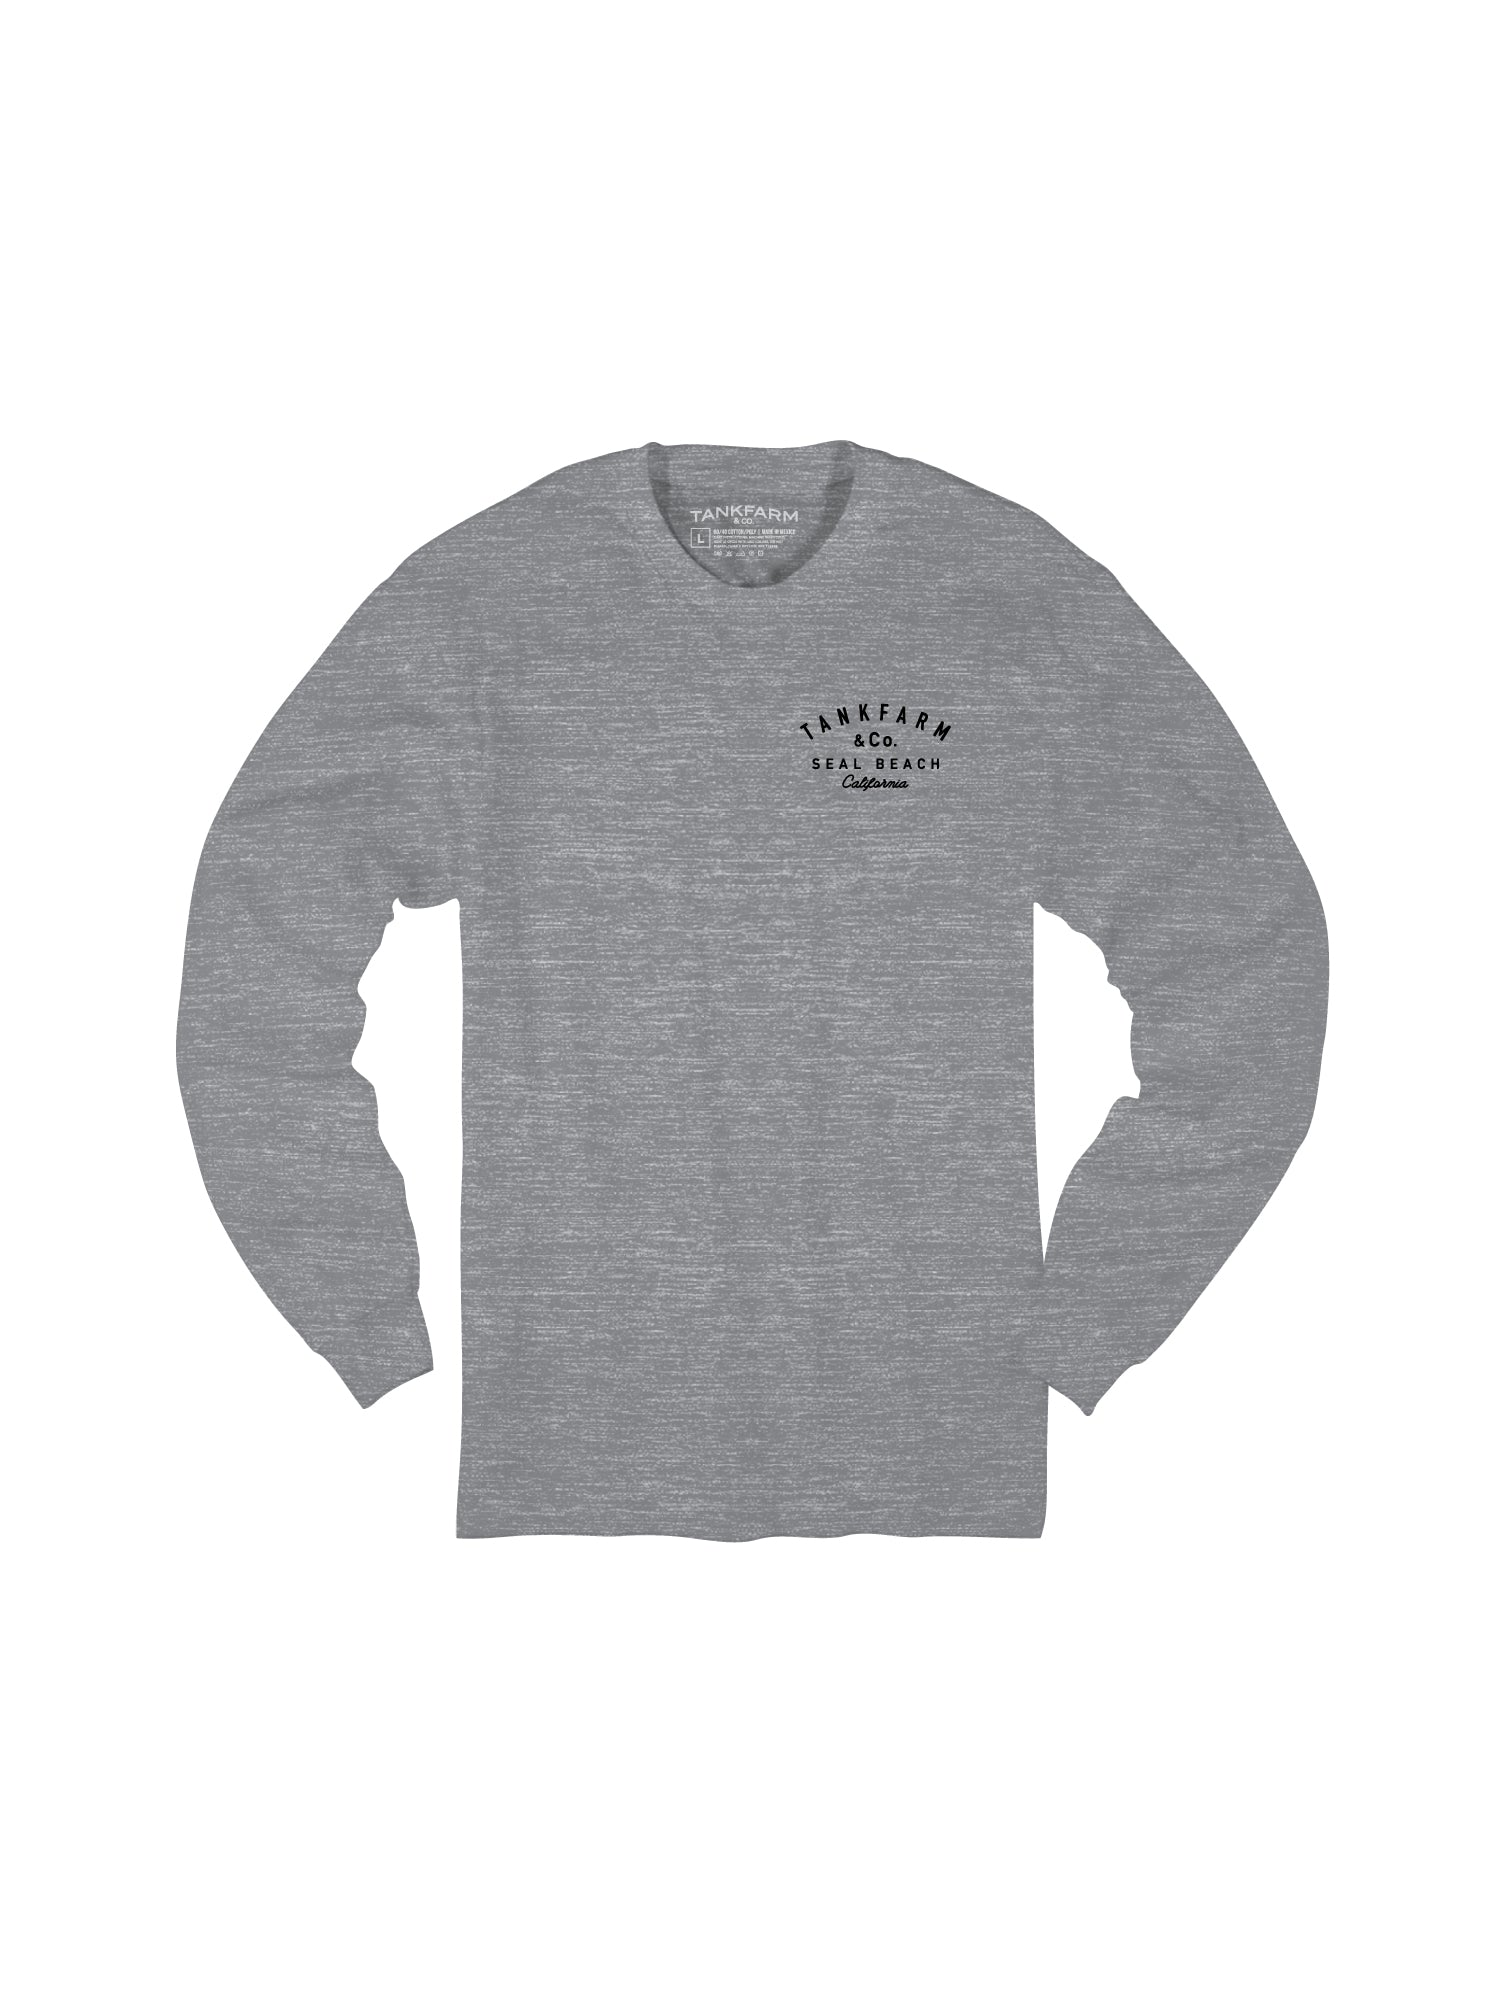 SHORE BREAK L/S - LIGHT HEATHER GRAY